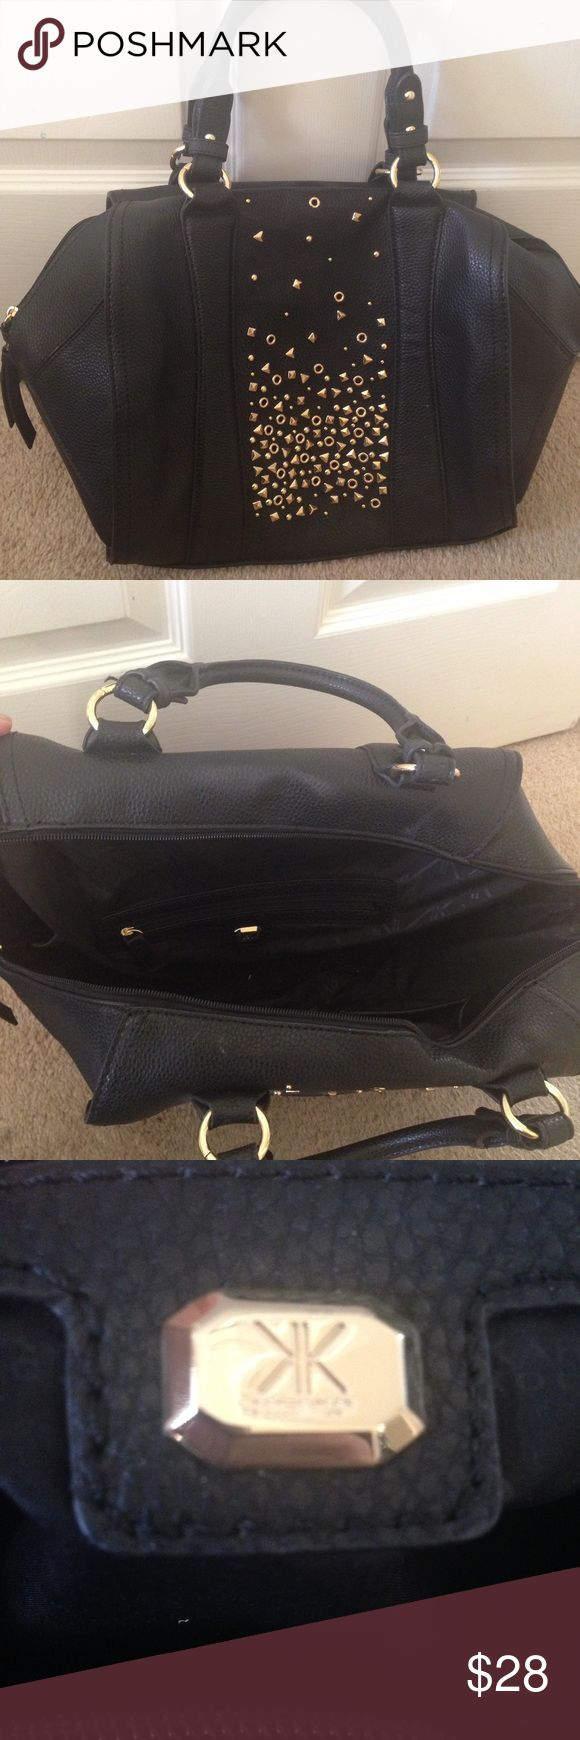 Kardashian Kollection large bag Kardashian kollection large bag. In perfect condition Kardashian Kollection Bags Travel Bags